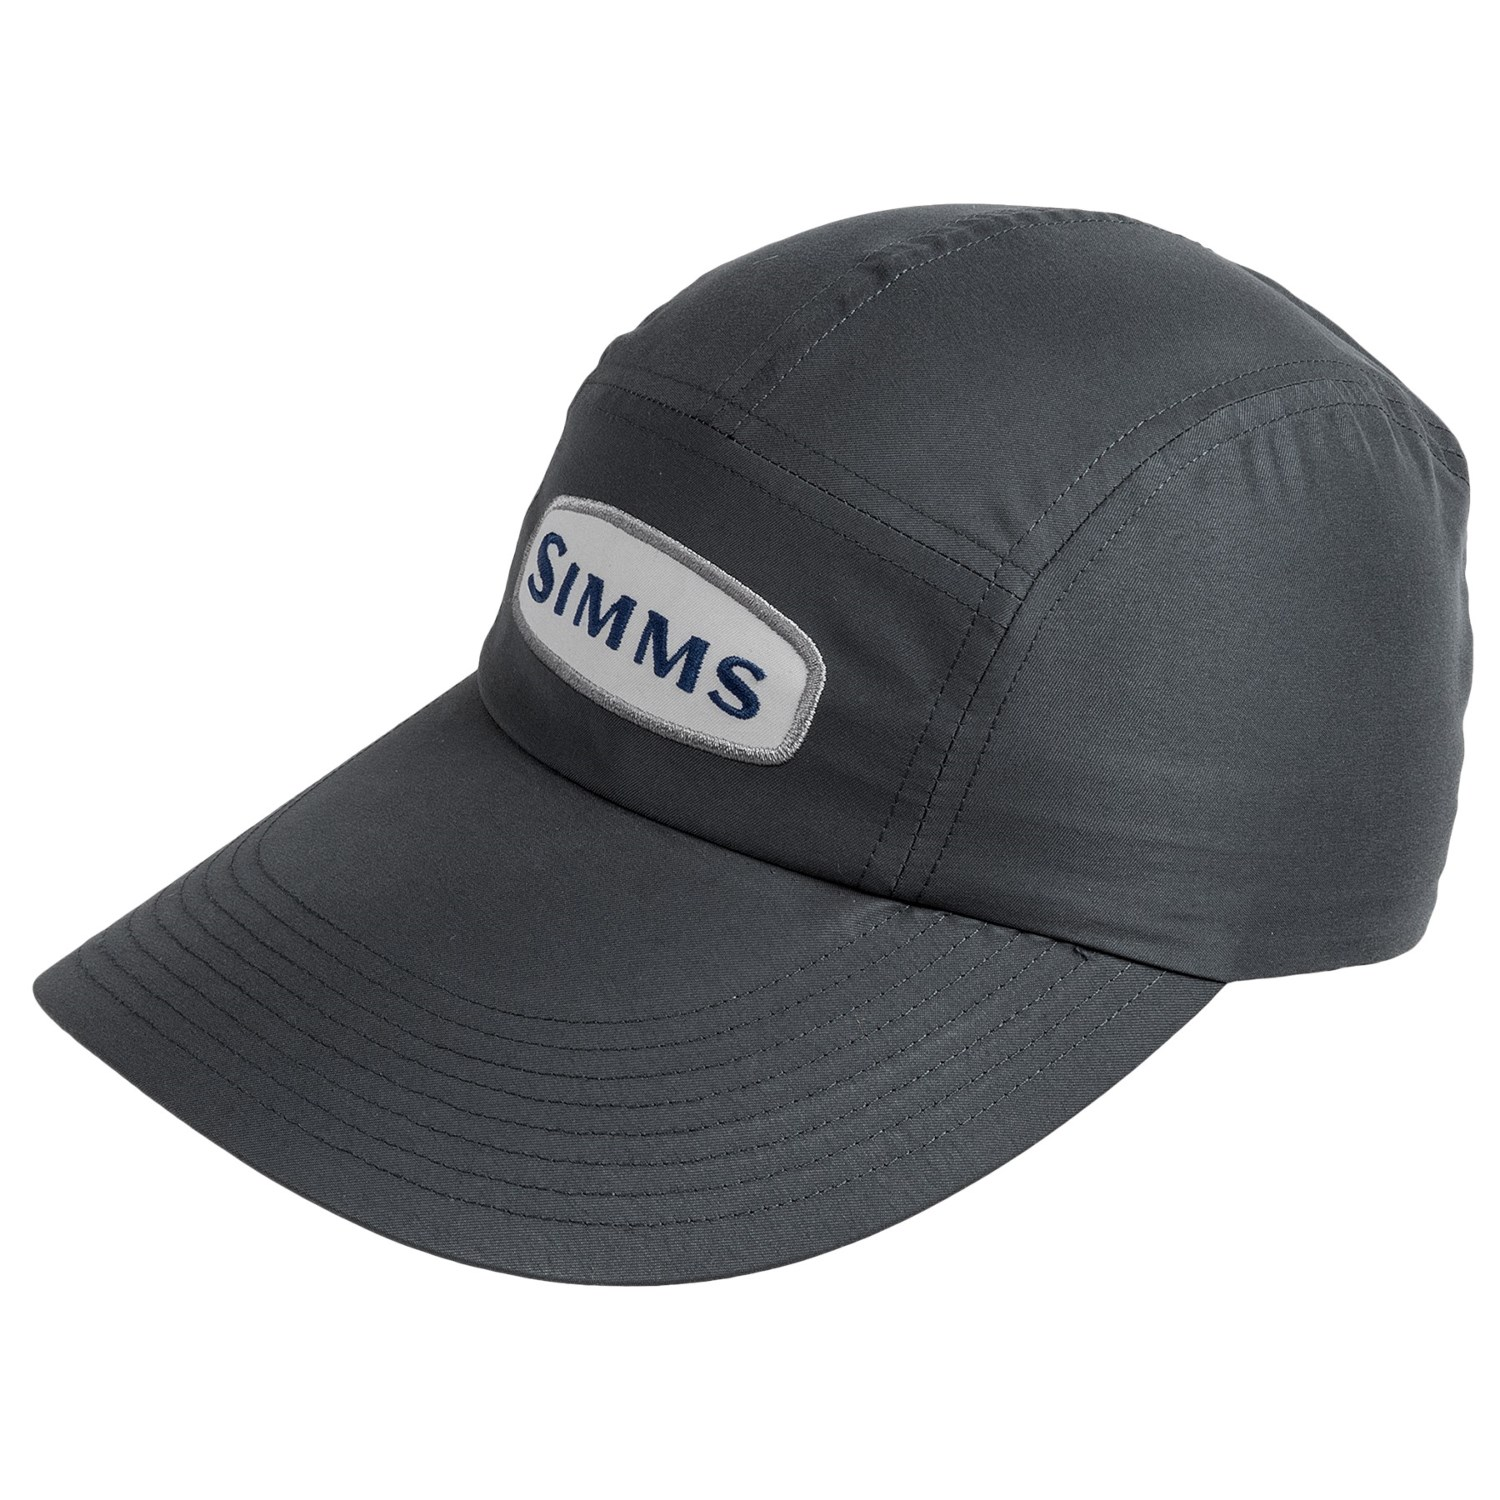 Simms microfiber long bill cap upf 50 for men save 36 for Long bill fishing hat